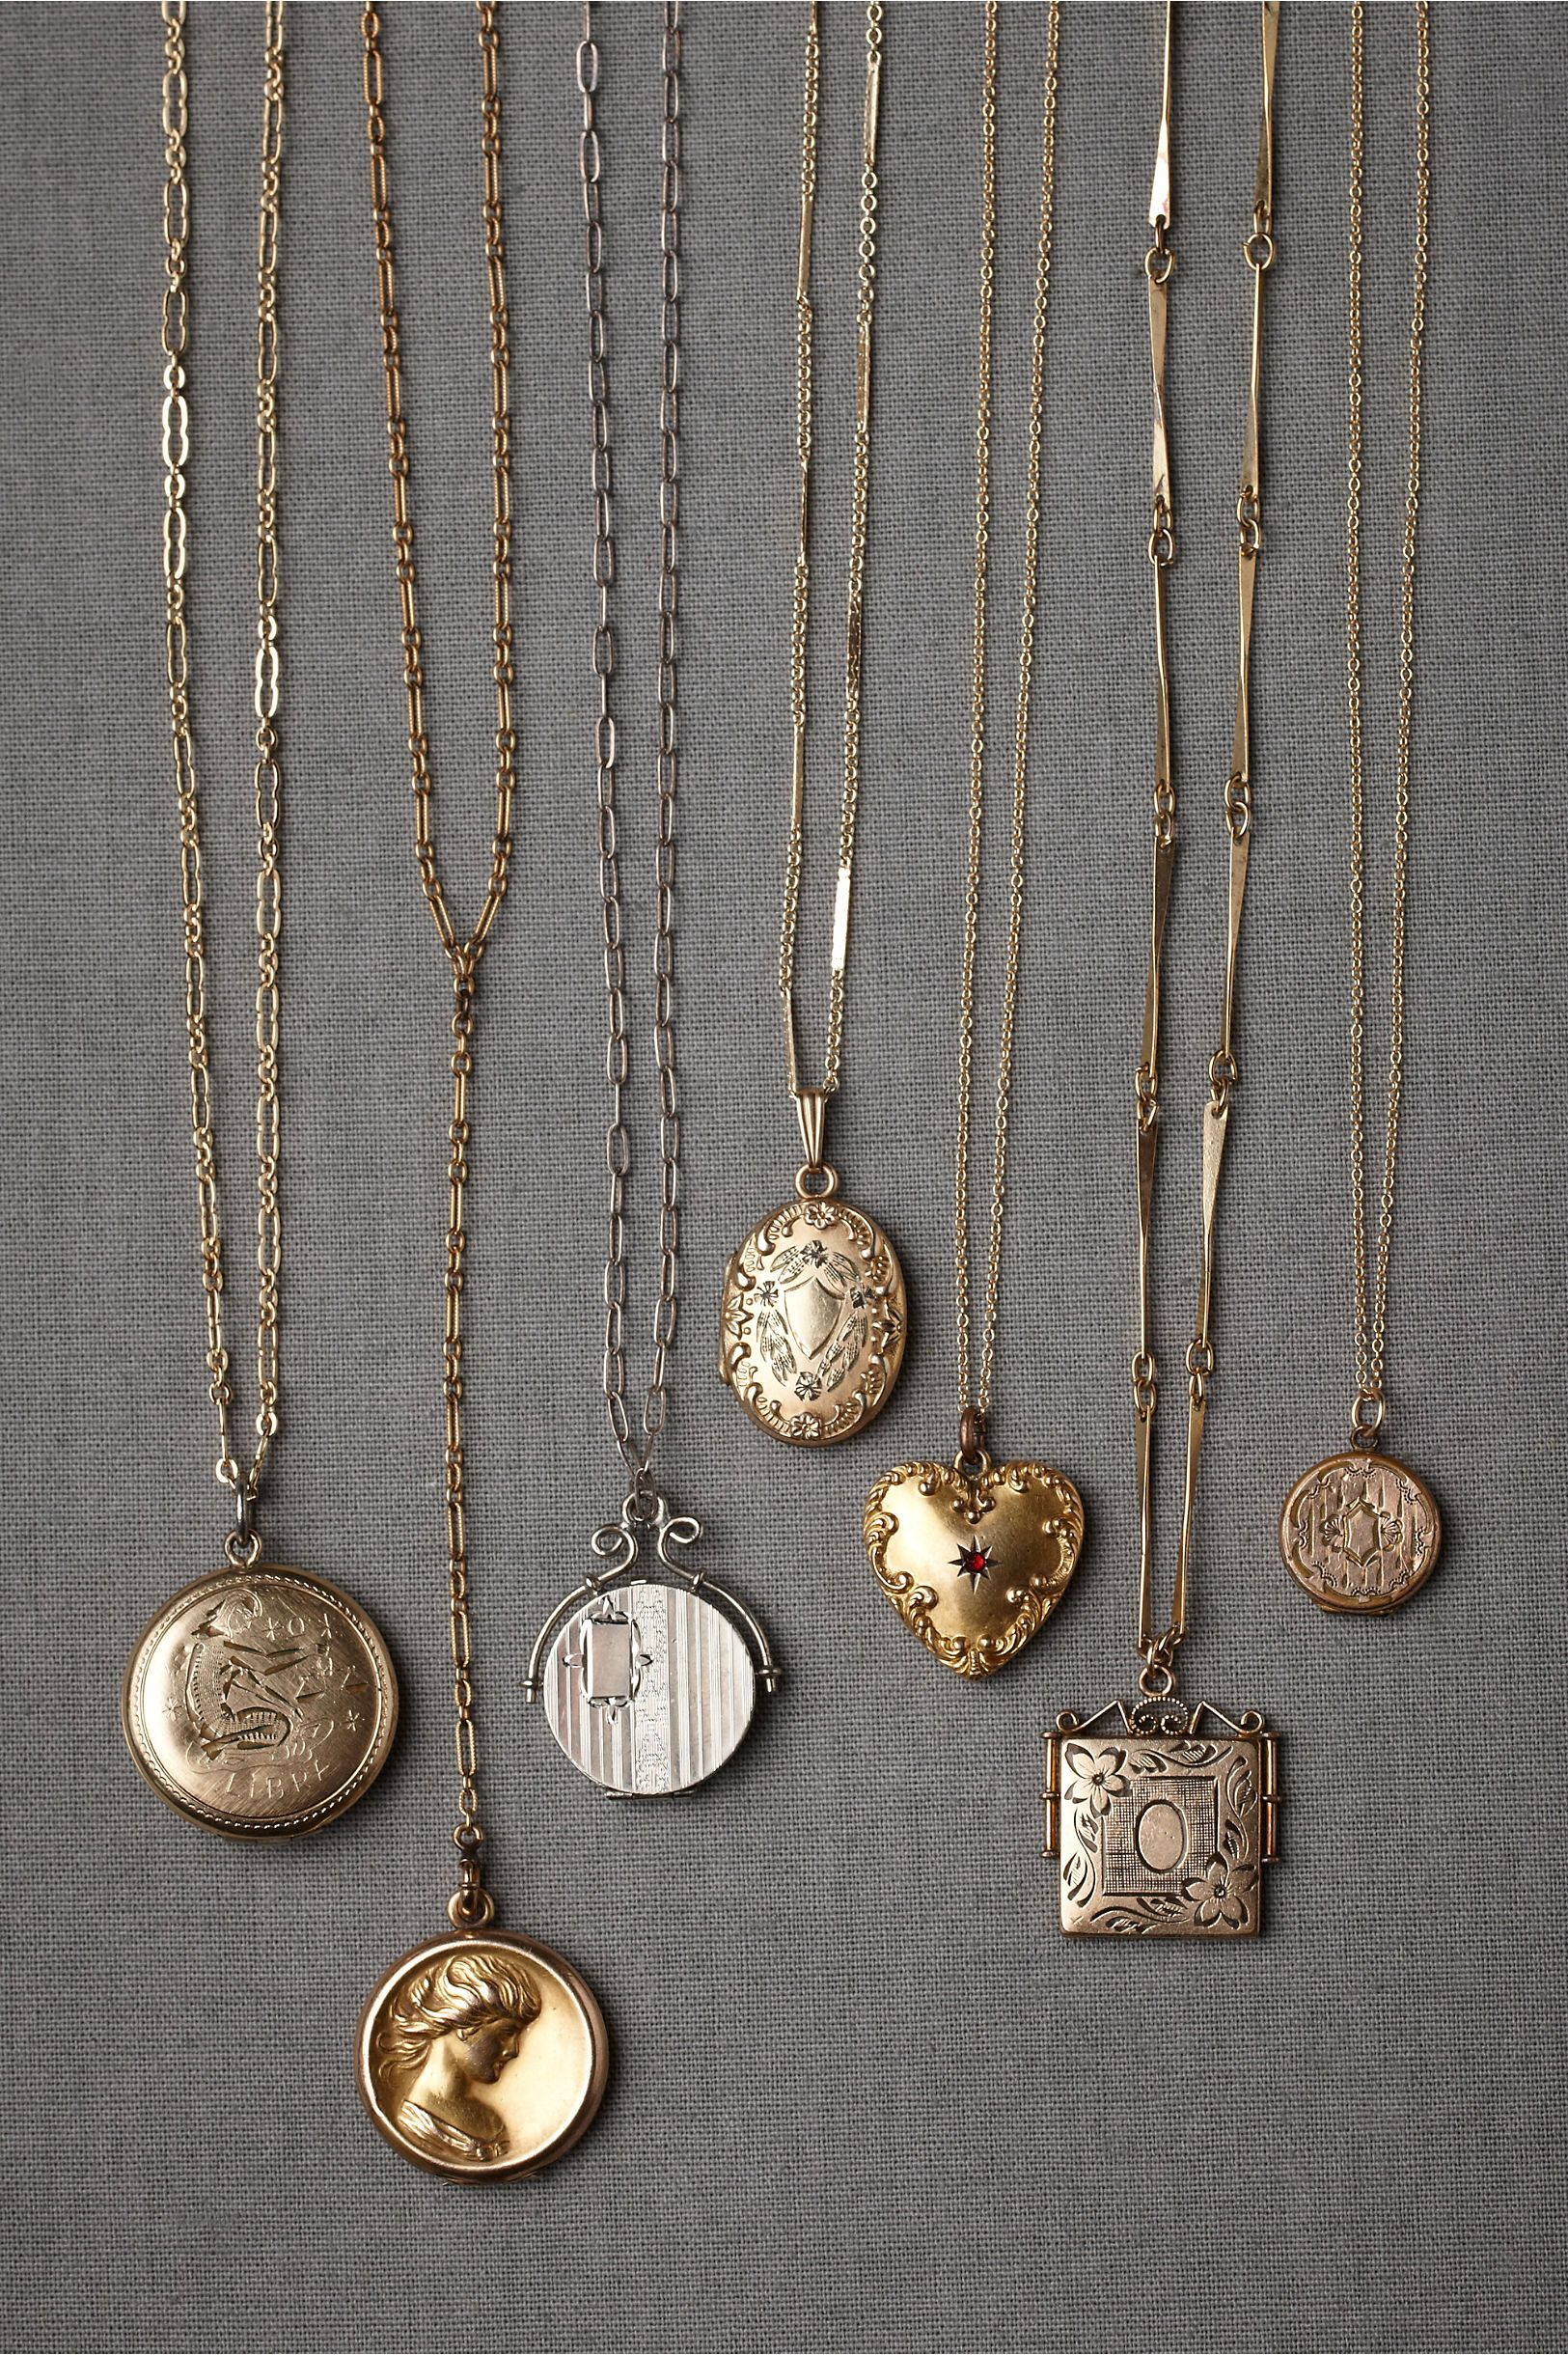 Locket necklaces are a great piece that goes with so many outfits